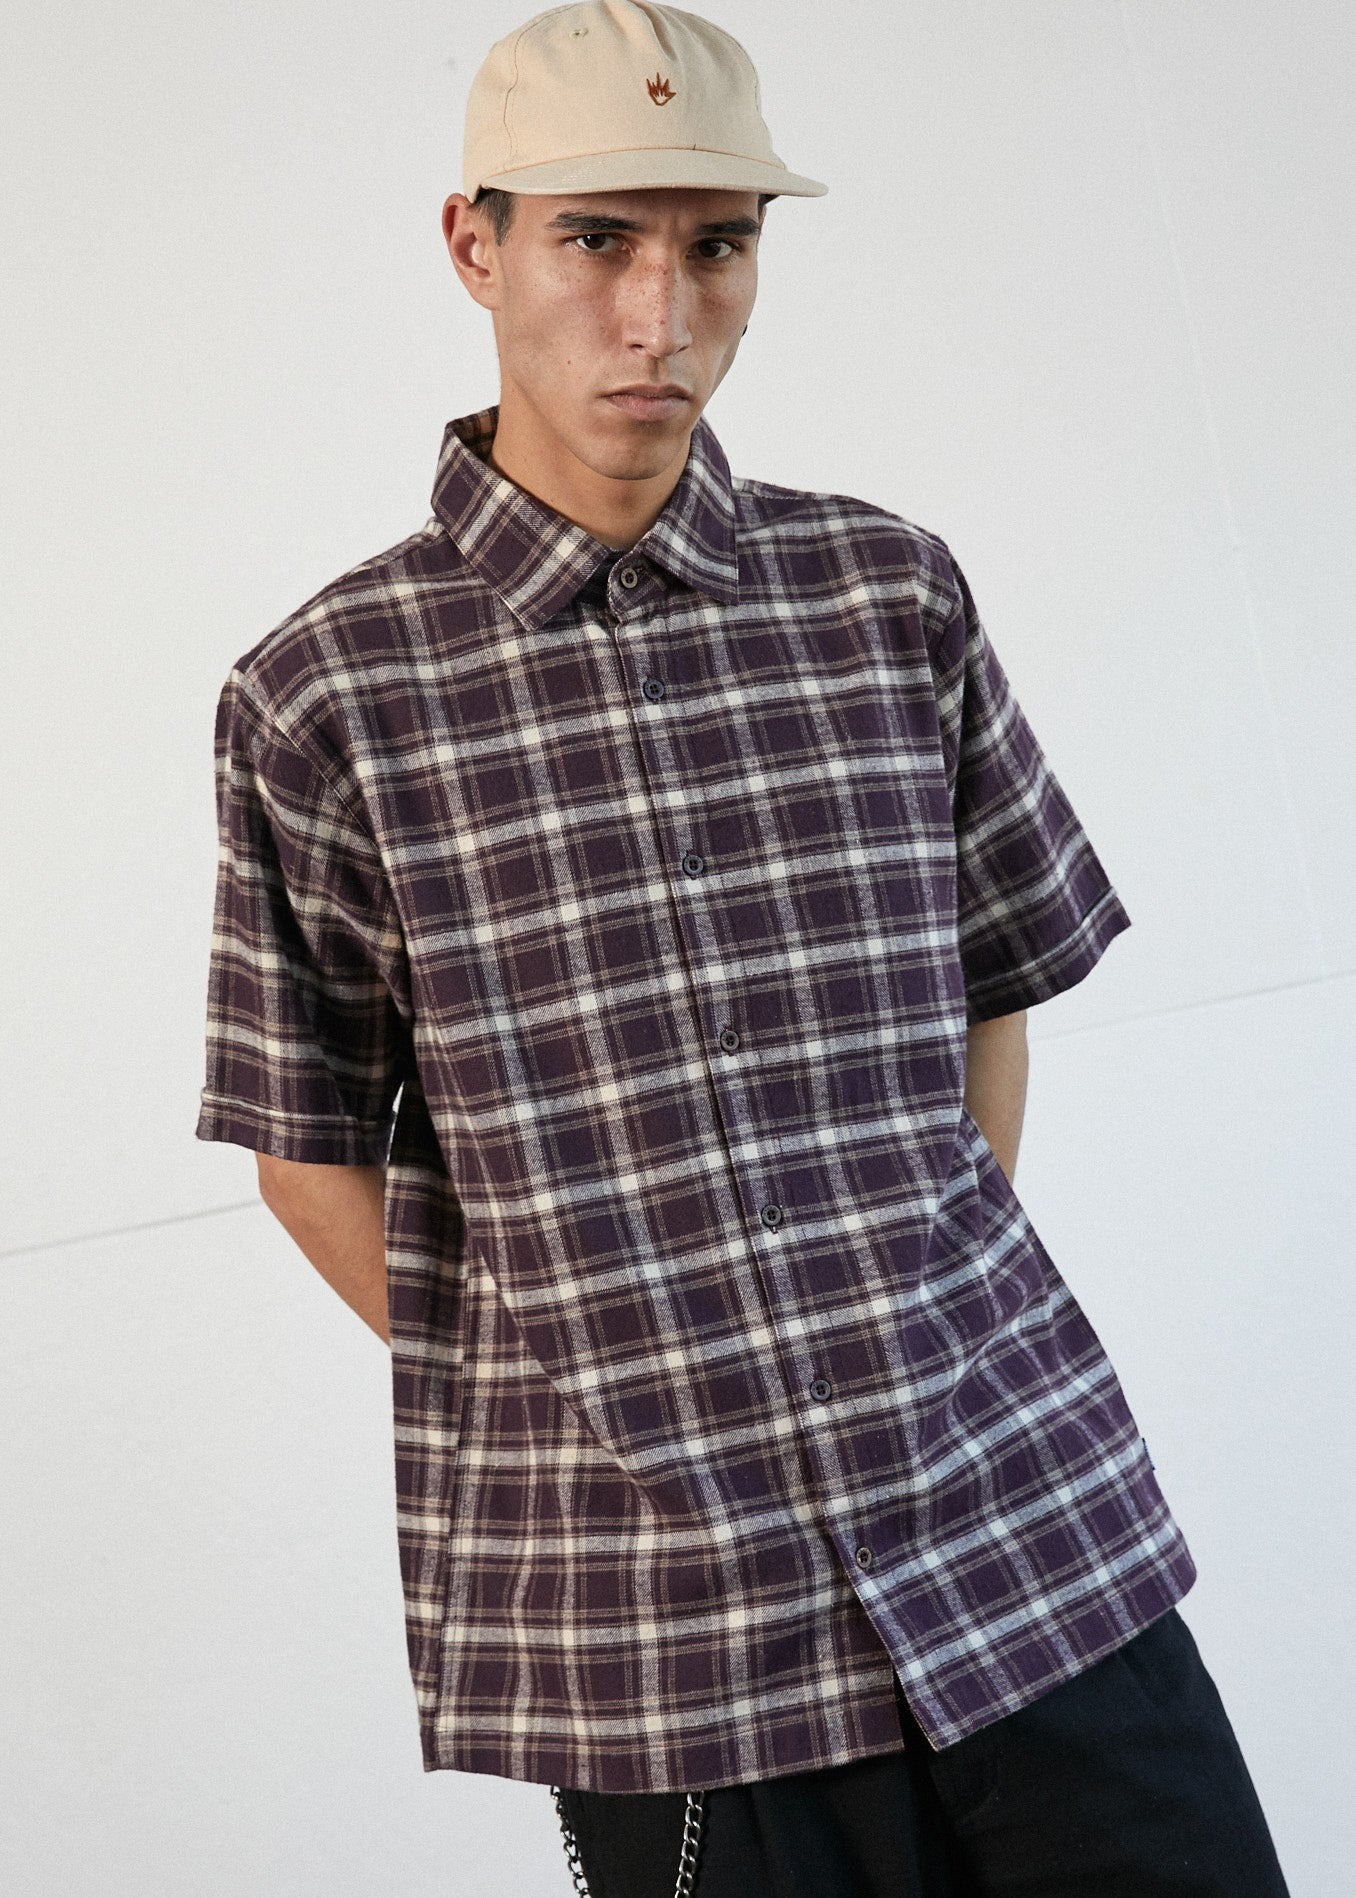 Kemp Hemp Short Sleeve Shirt in Mulberry Check